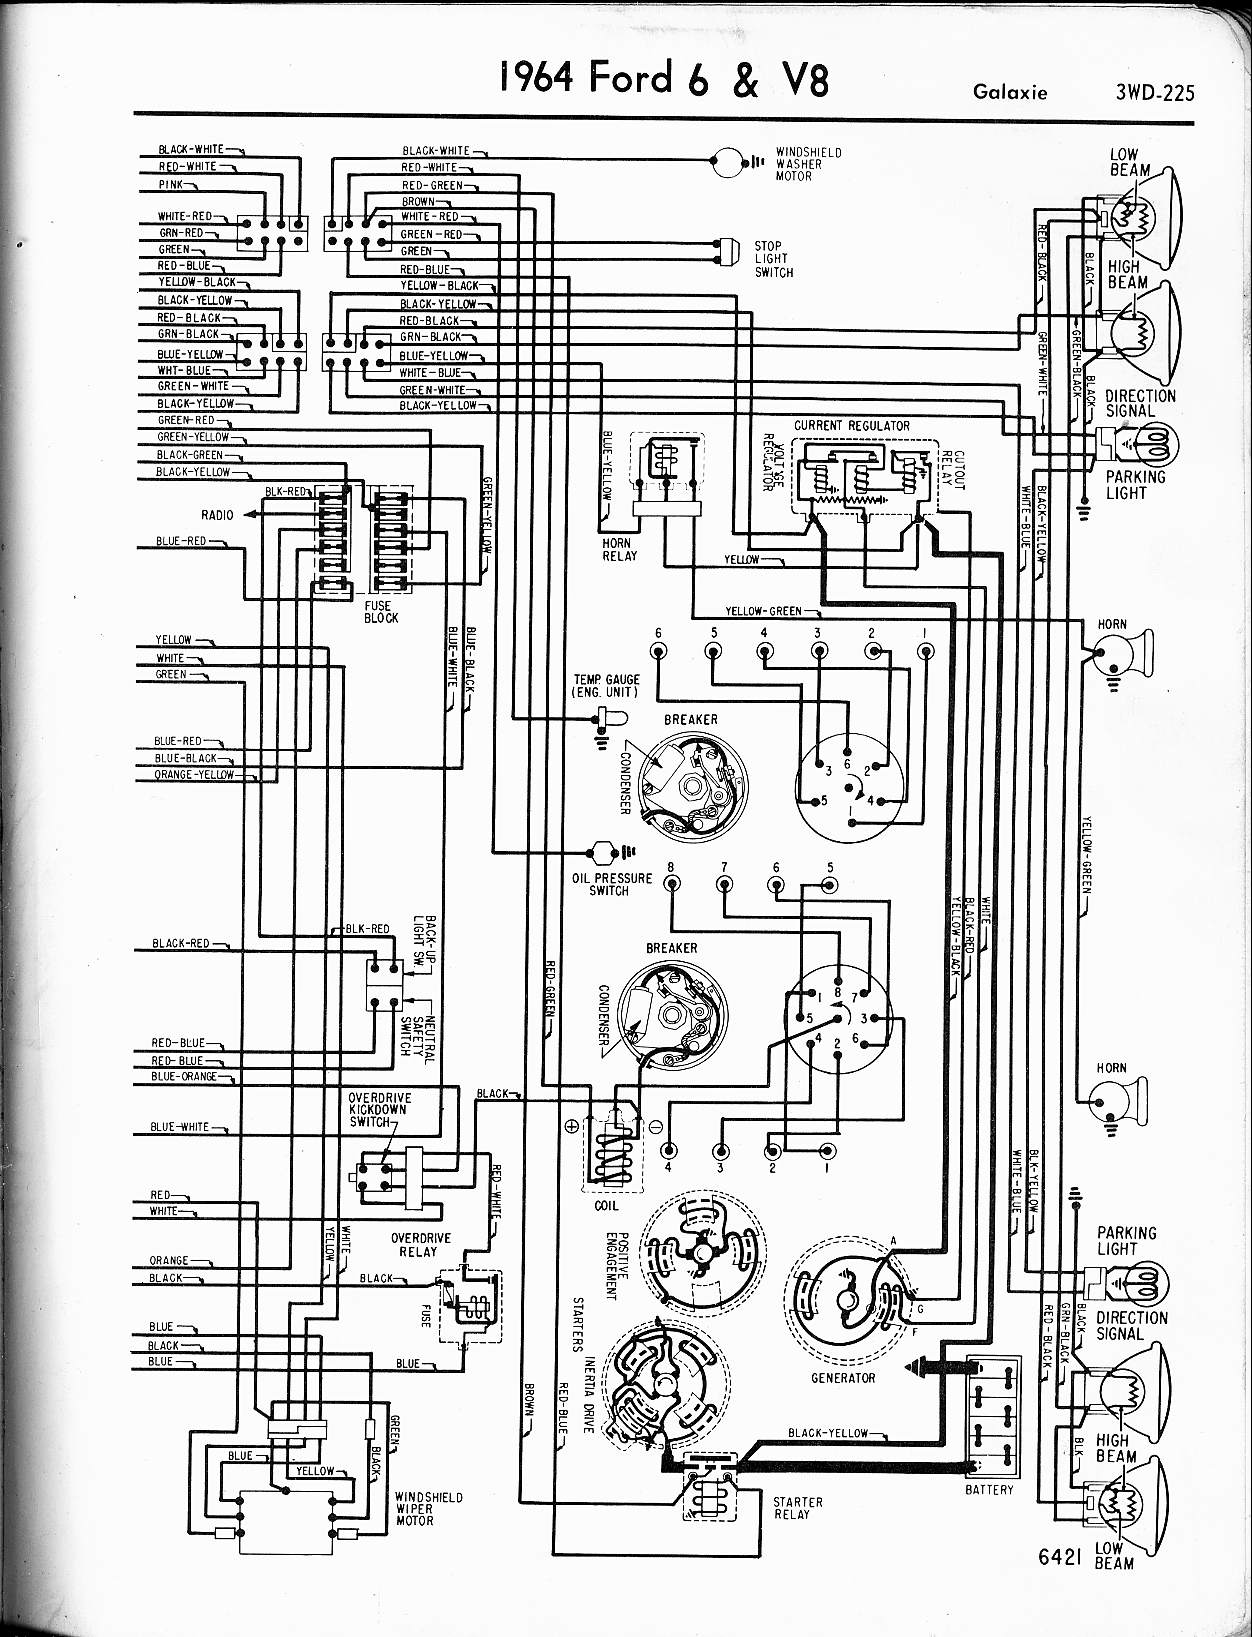 Ford 500 Wiring Diagram Books Of 2007 1961 Galaxie Fuse Box Free Engine Image For Shaker